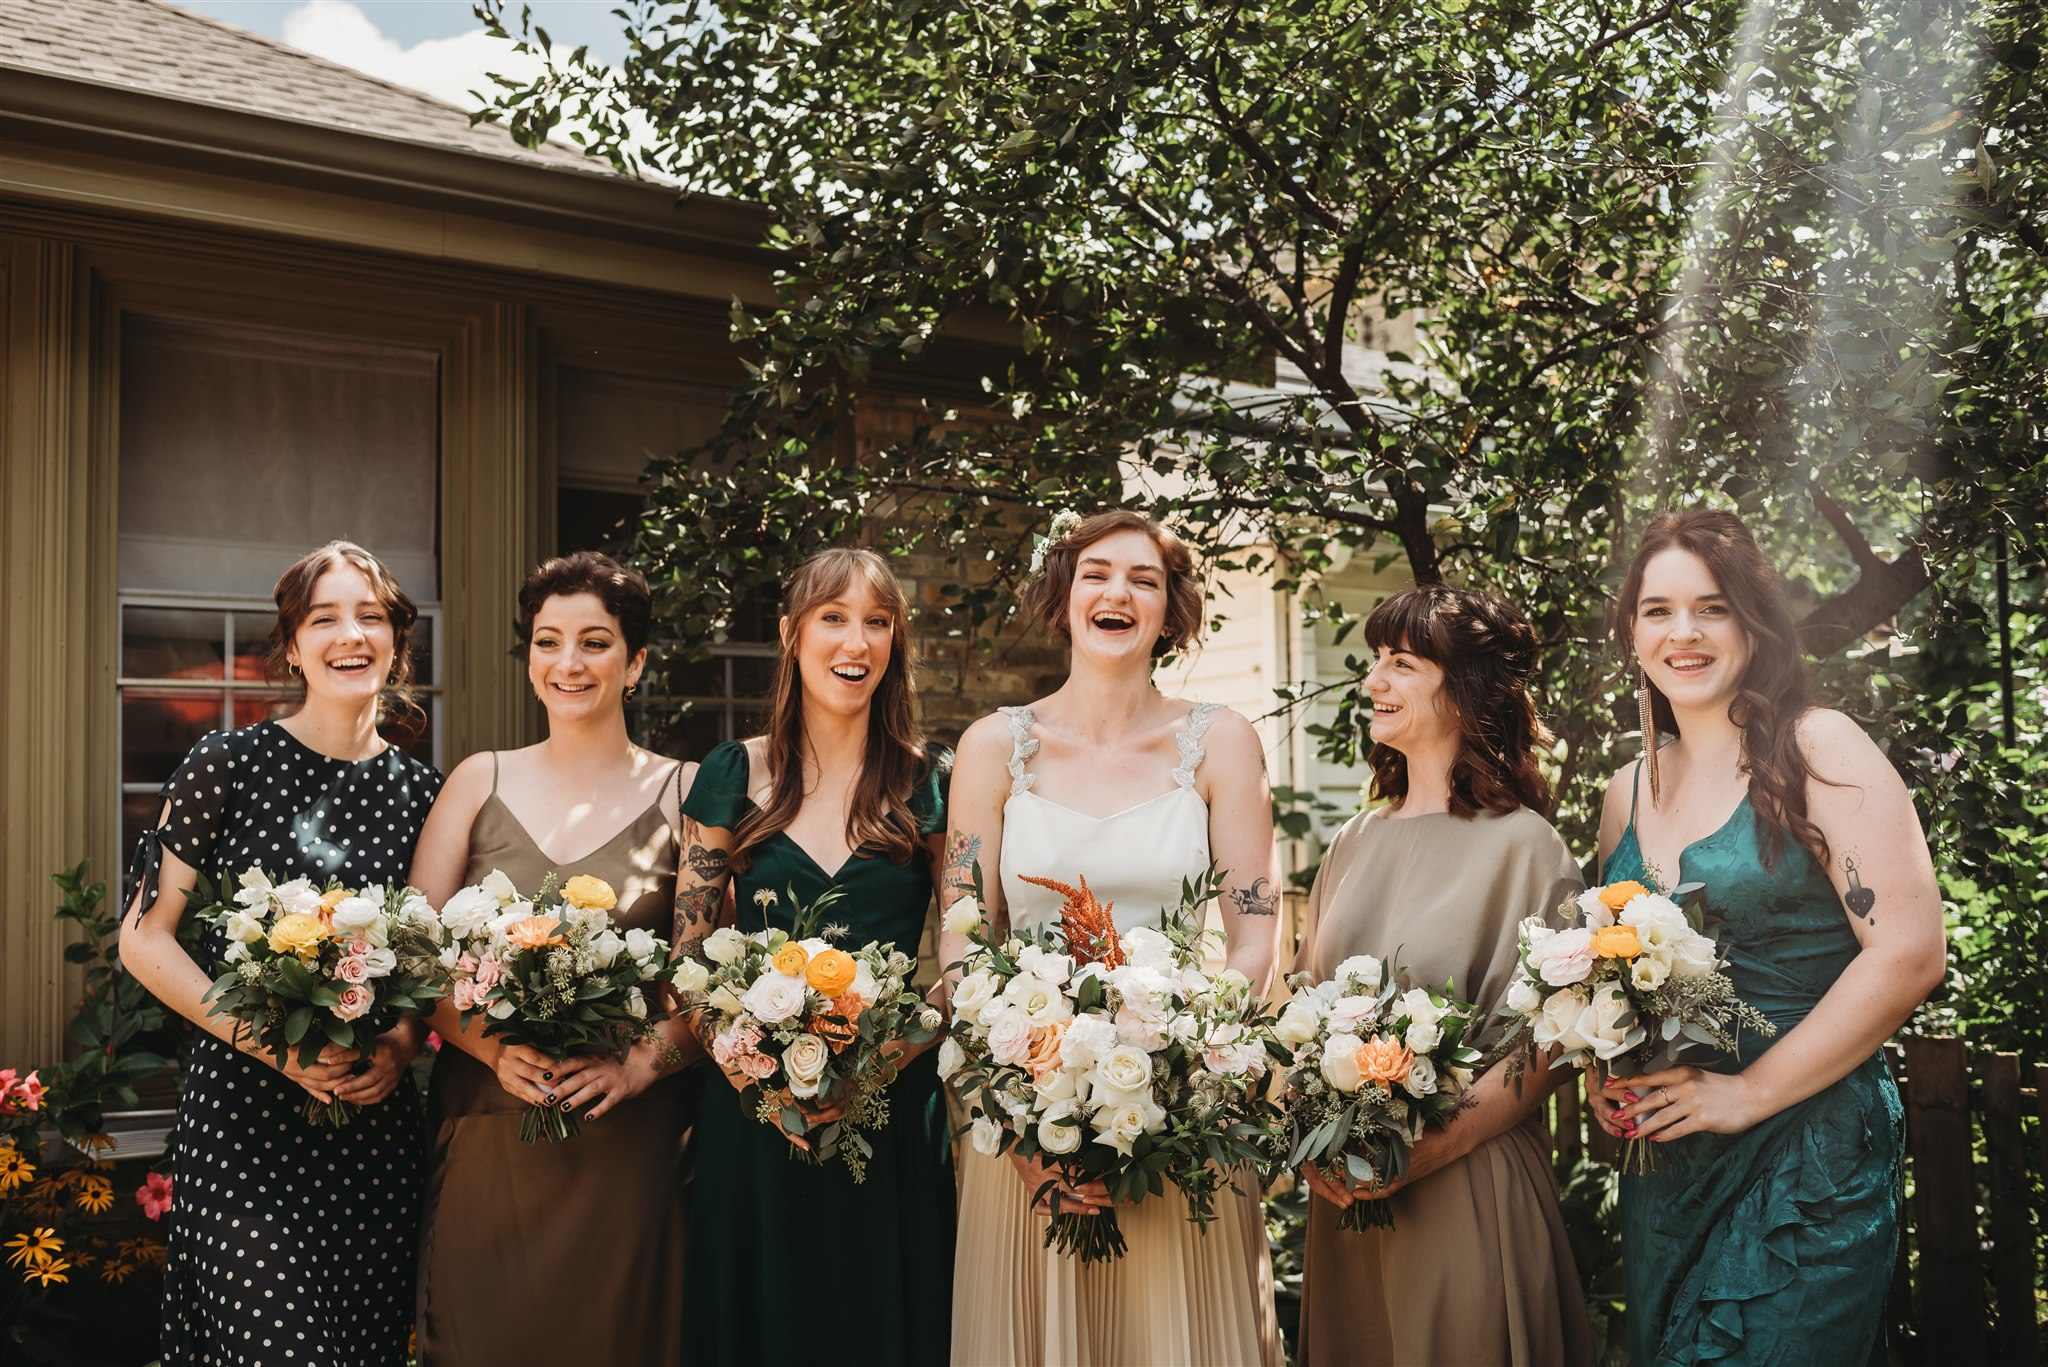 wedding party picture with bride and bridesmaids laughing in backyard garden with mismatched dresses